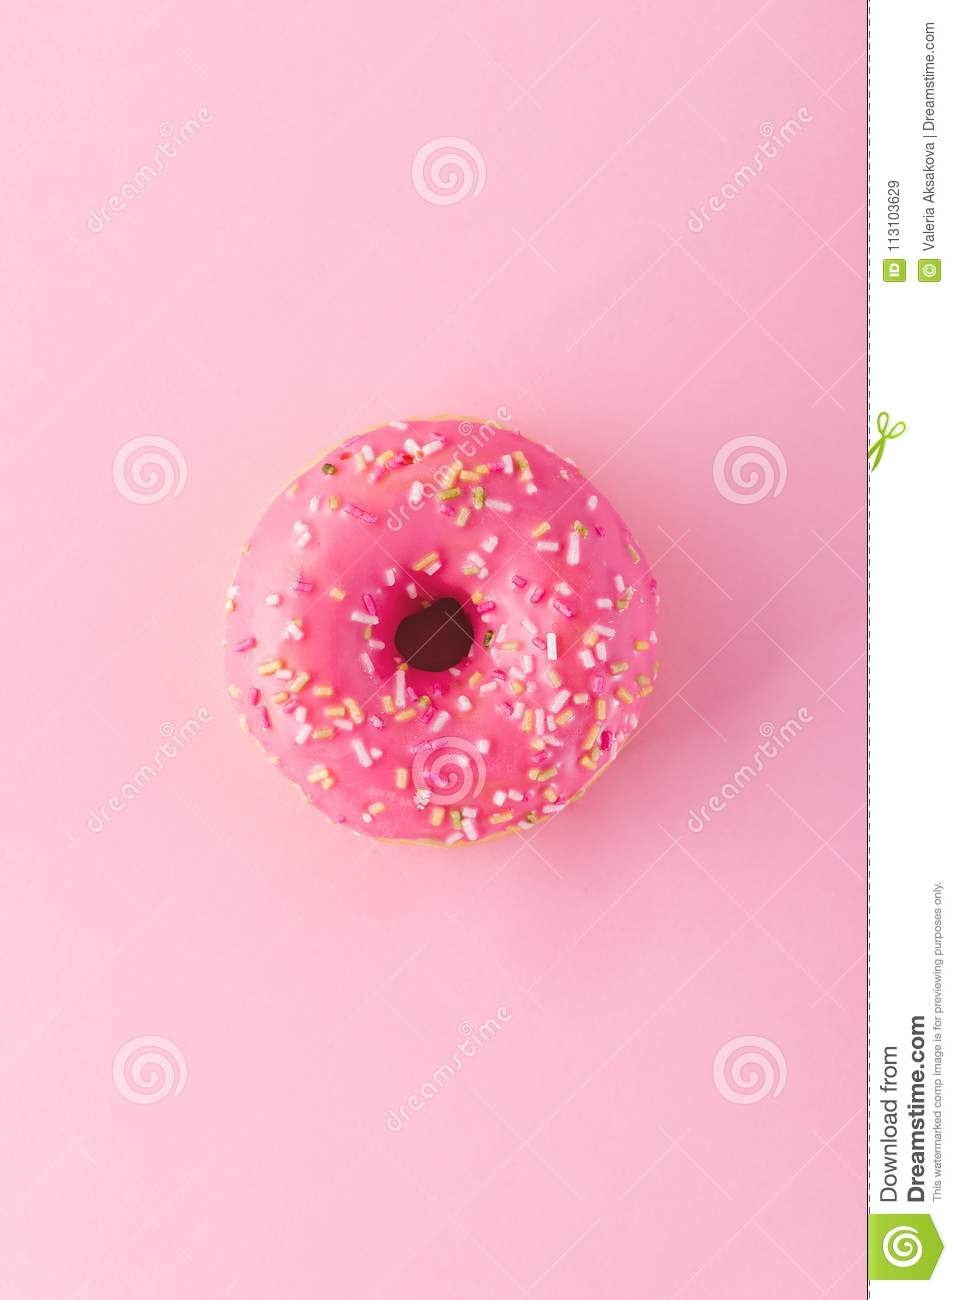 Pink donut with sprinkles stock image  Image of gourmet